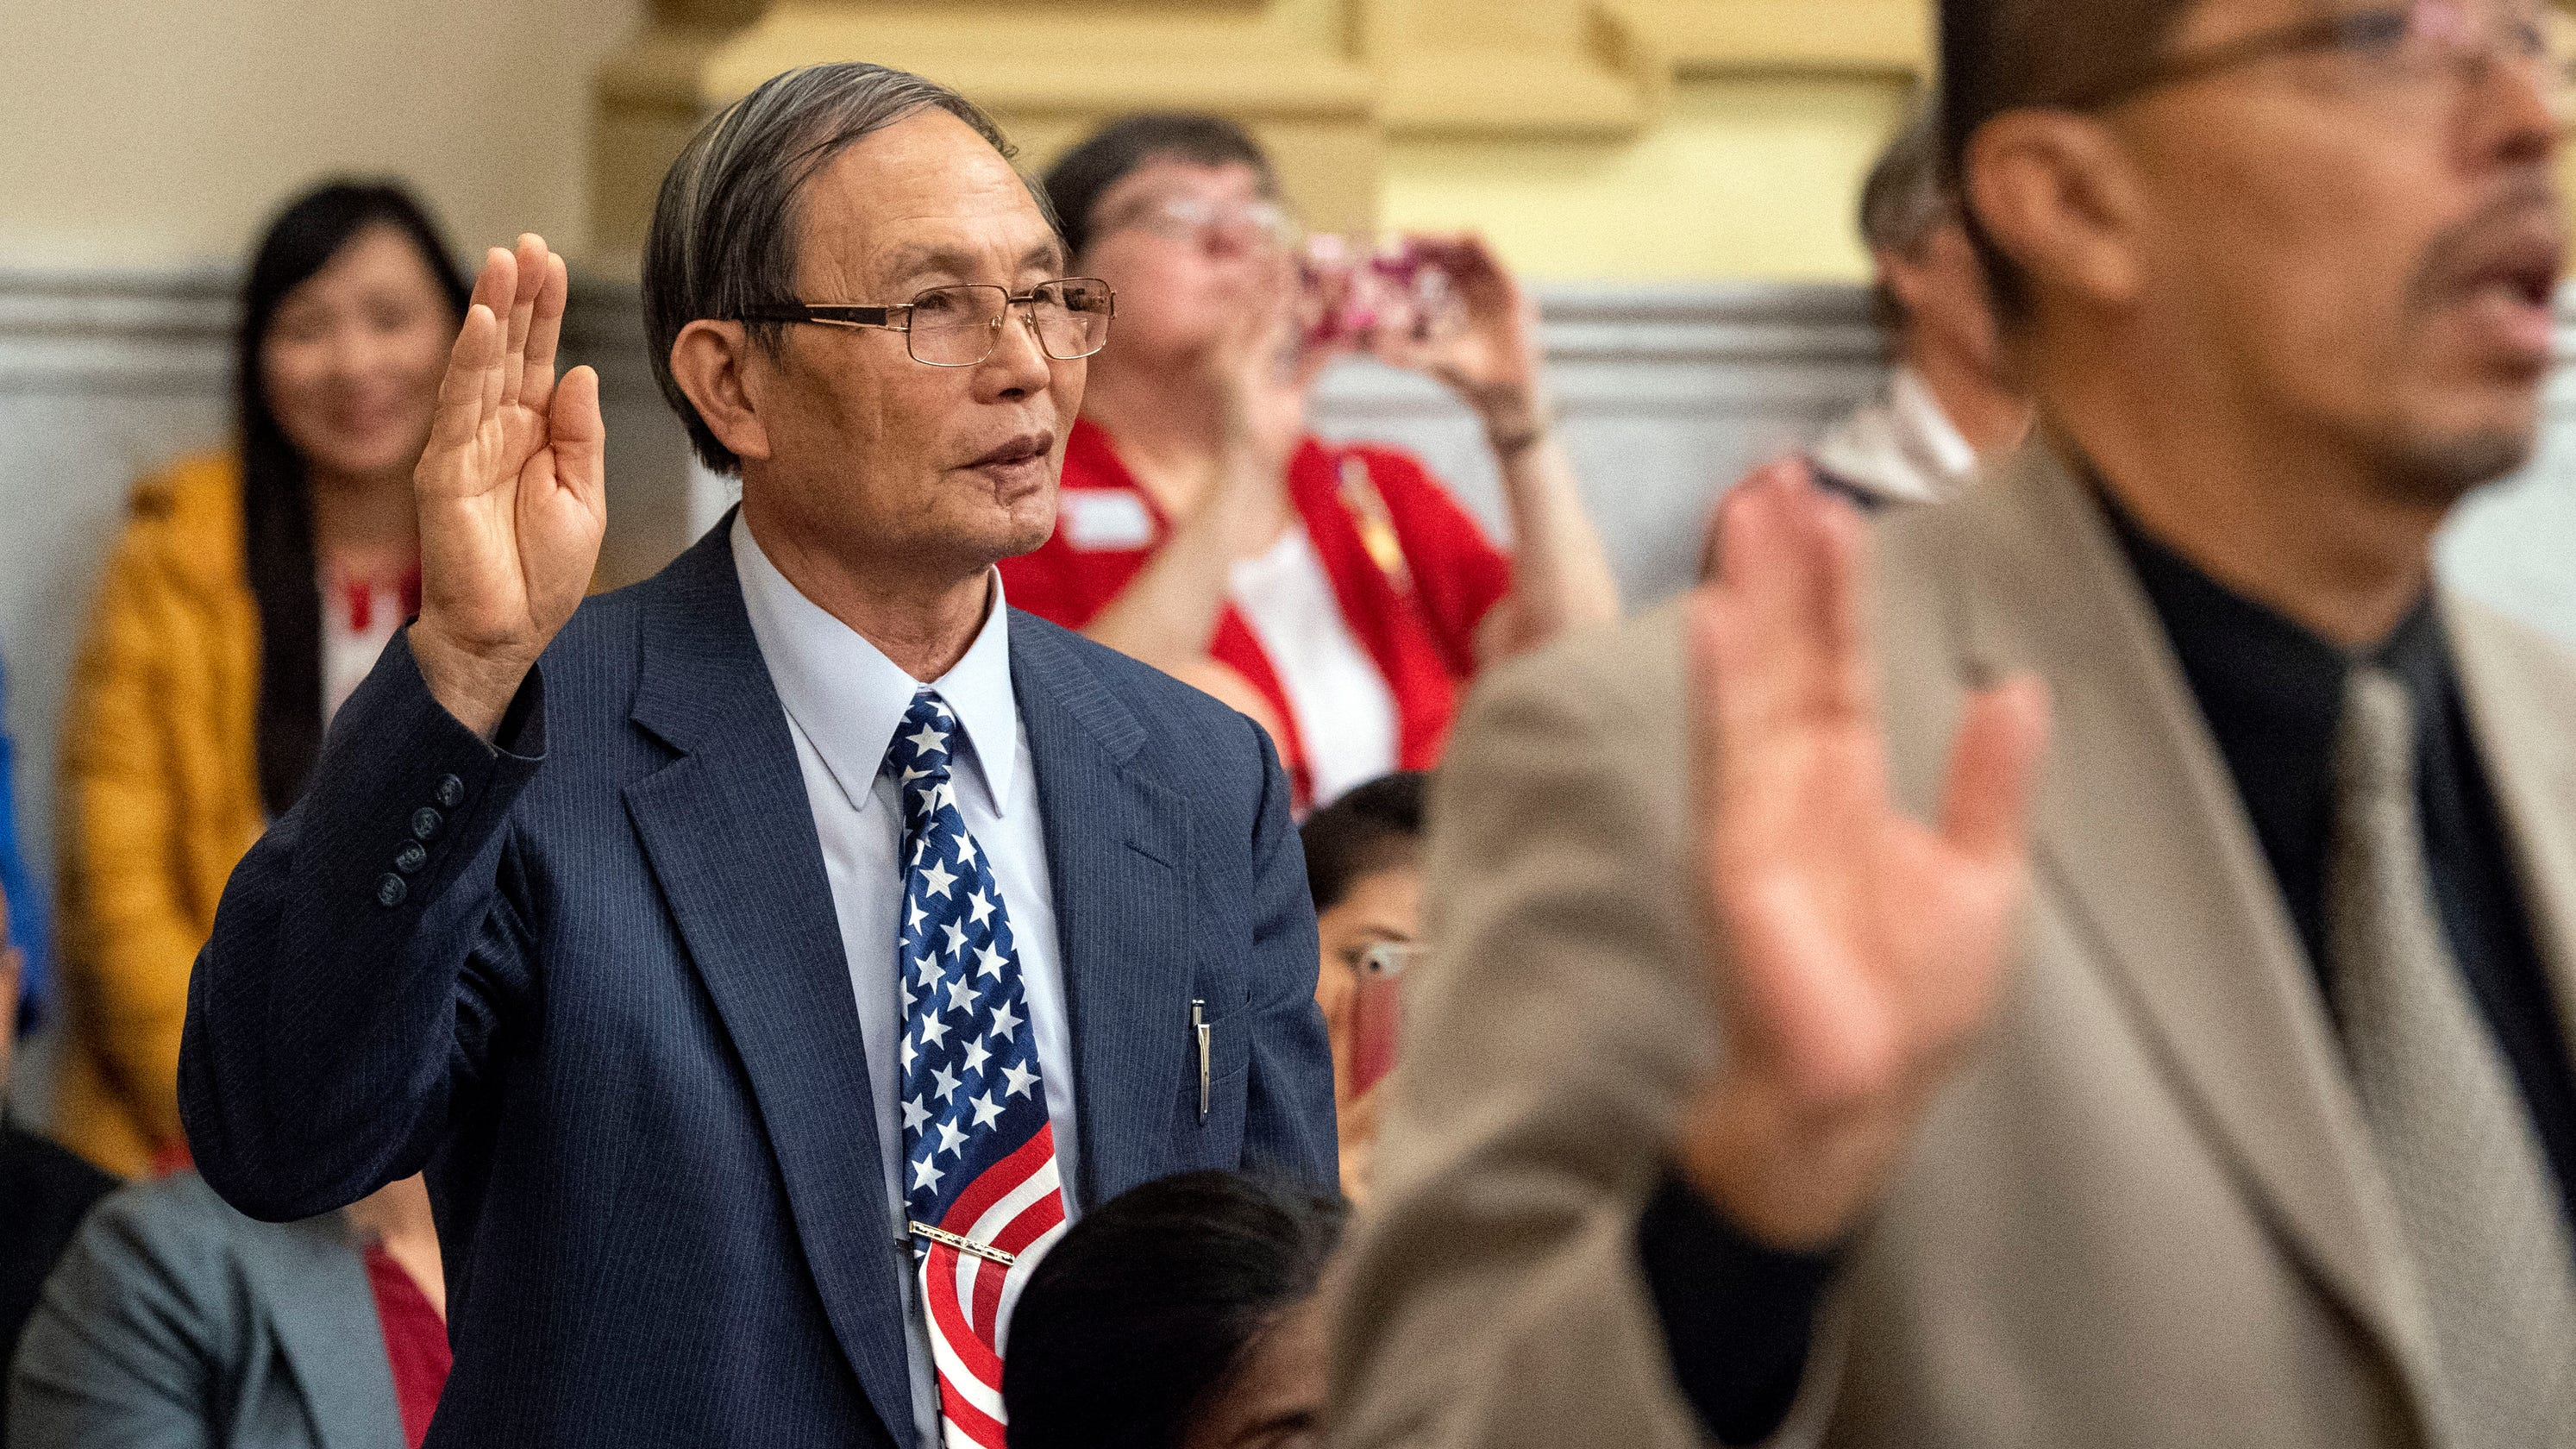 Finally American: 49 become naturalized citizens in York County